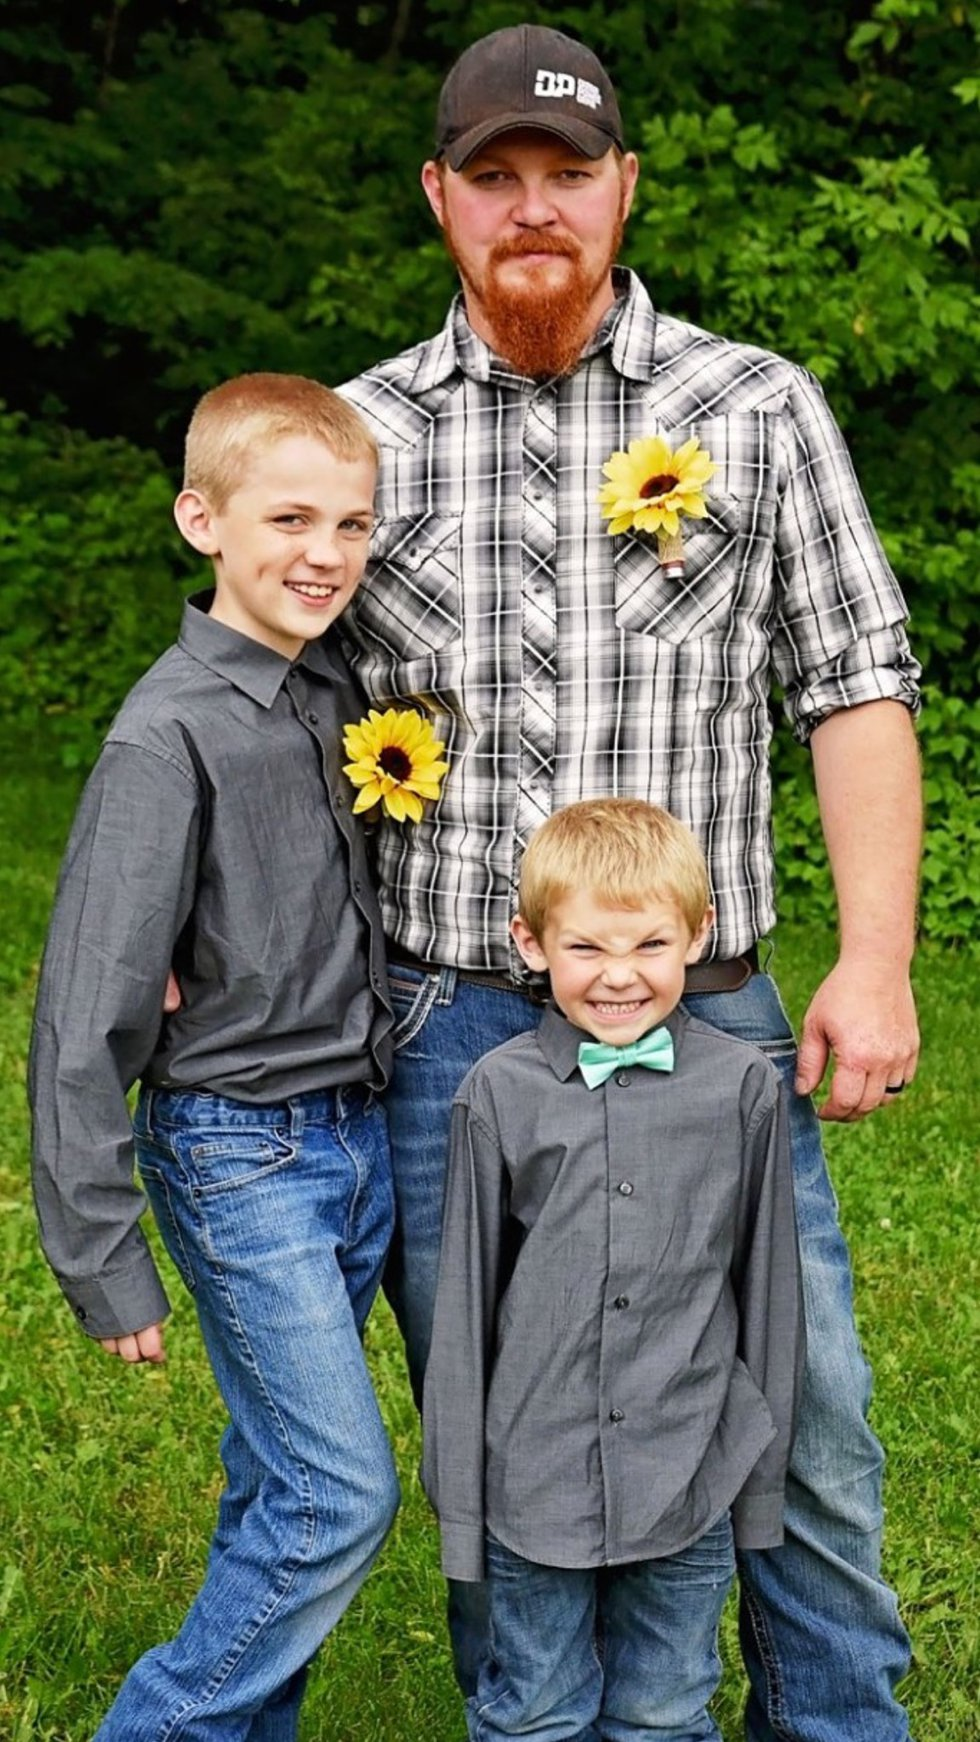 James Chrislaw is pictured here with his two sons